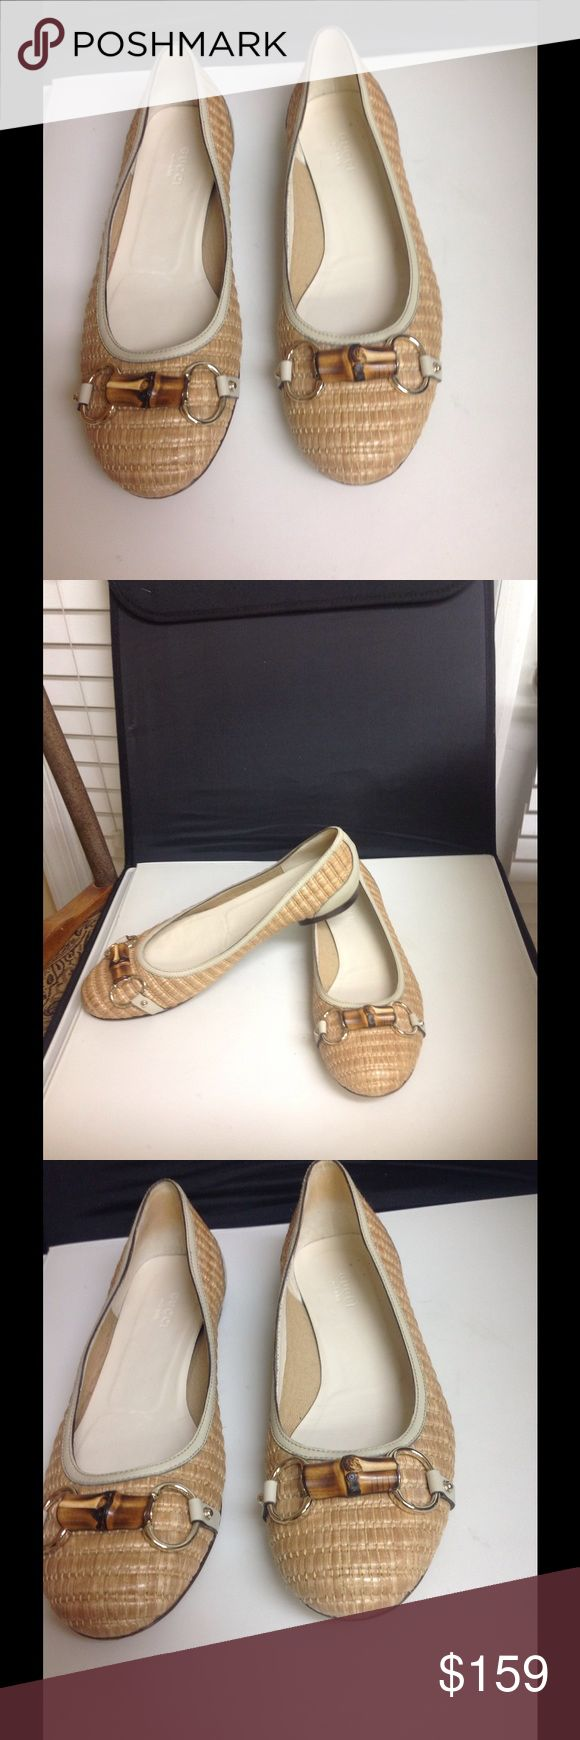 GuiccinBallet Horsebit Flats Size 8.5 Adorable canvas and leather horsebit design size 8.5 by designer Gucci. Great classic style, beautiful condition, low price. Gucci Shoes Flats & Loafers